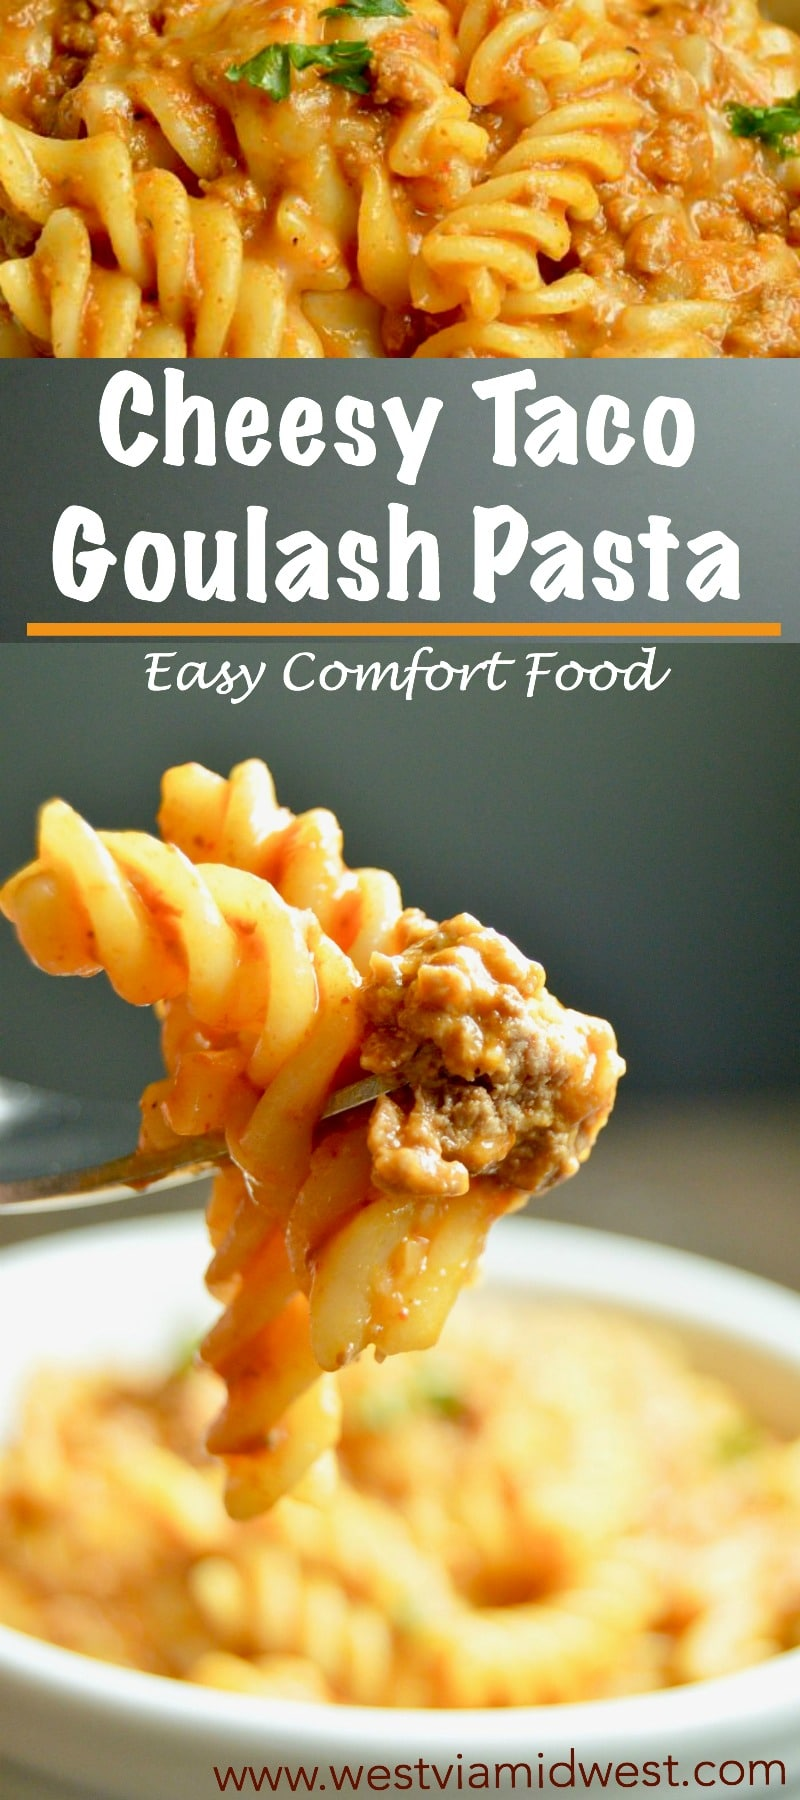 Cheesy Taco Goulash Pasta is a twist on a family staple. Cheesy, Spicy, warm comfort food with pantry staples that you can make last minute for spur of the moment entertaining!